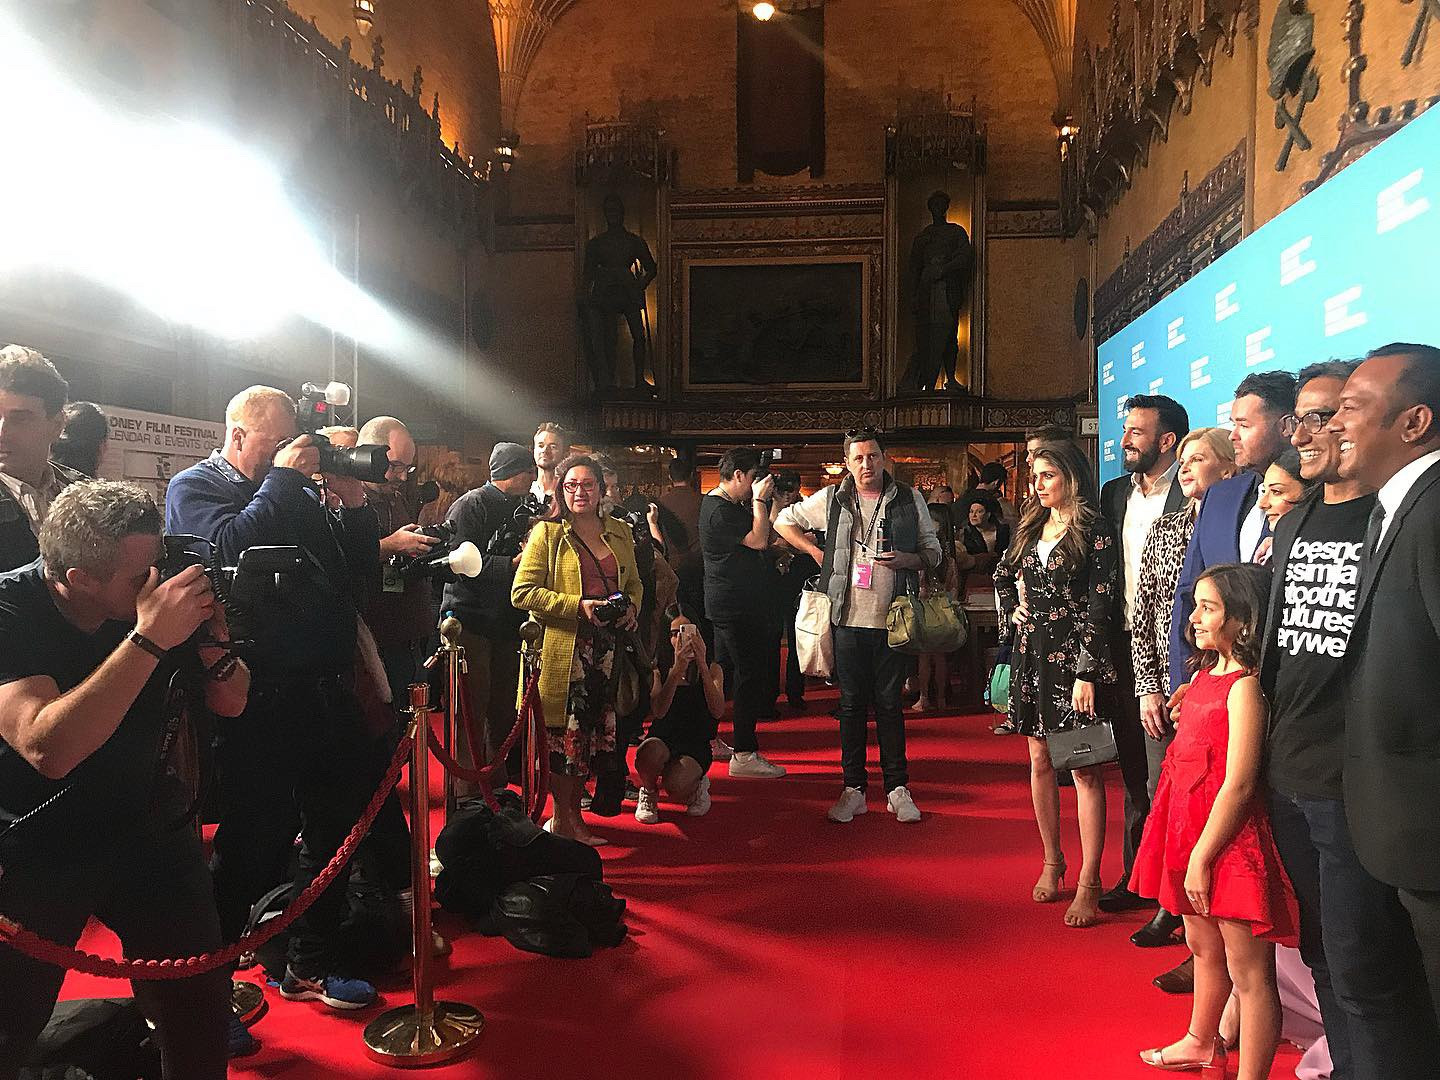 Slam Premiere - Sydney Film Festival 2019 at the State Theatre